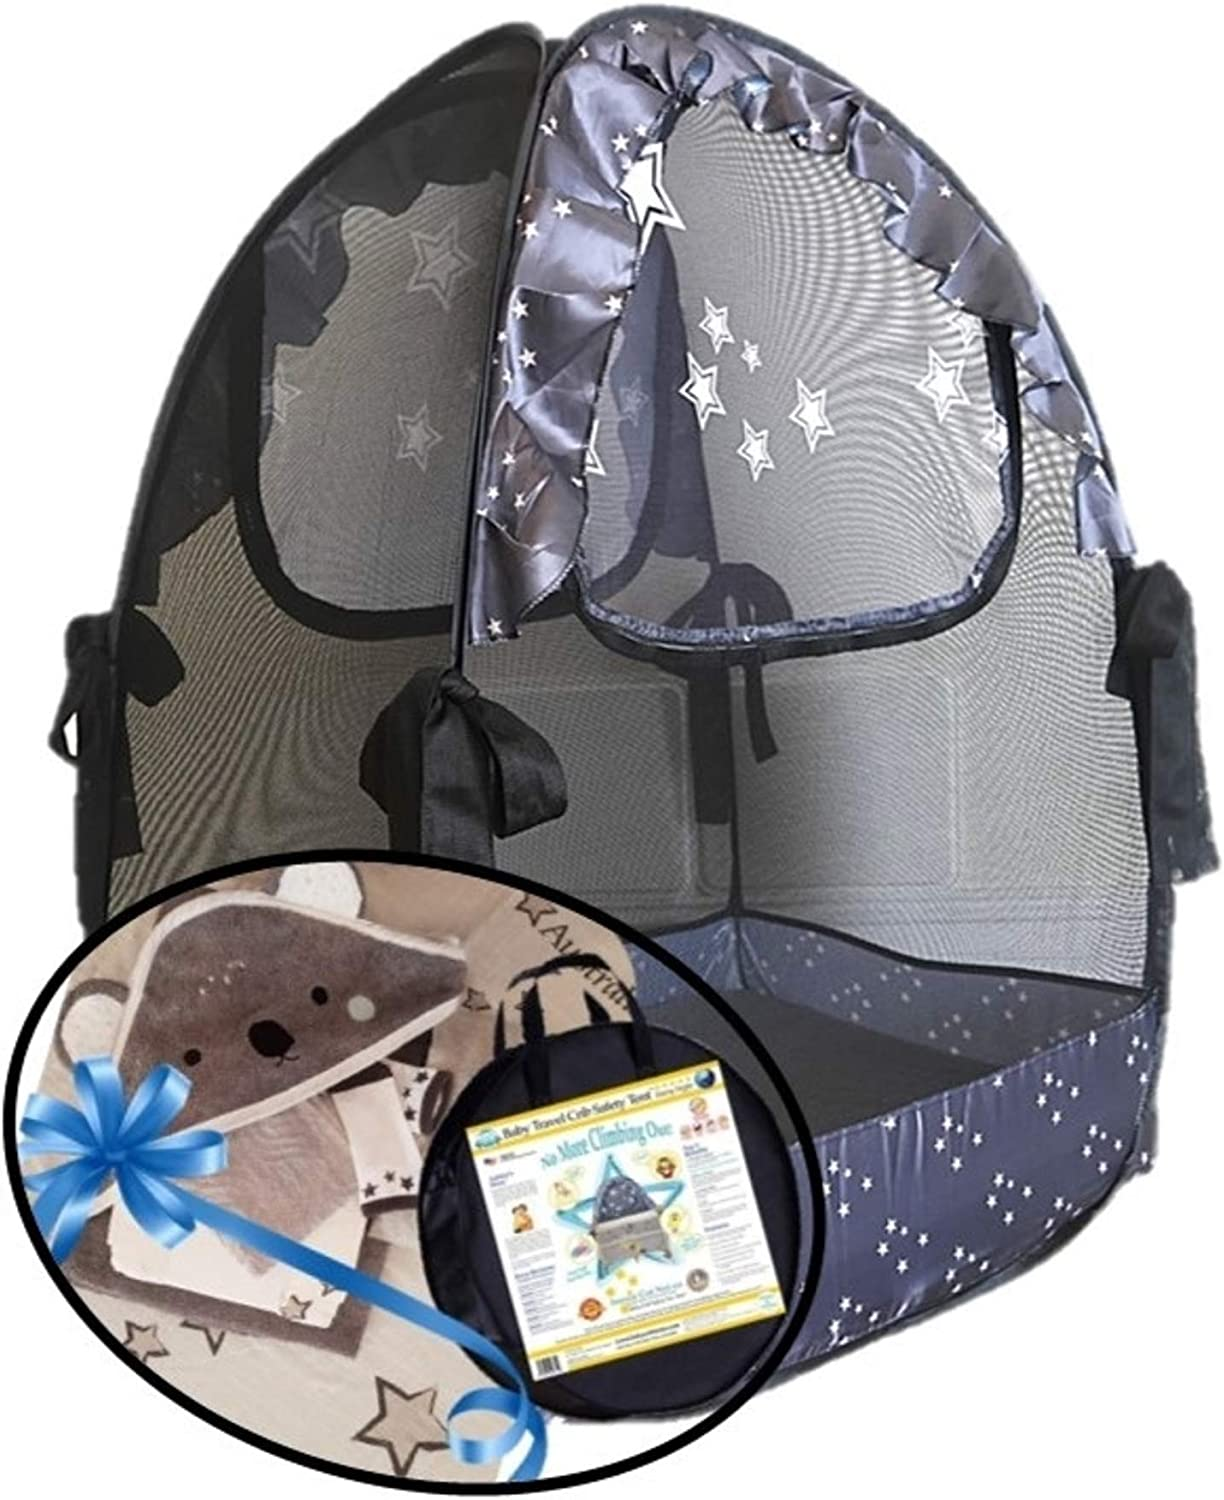 Mosquito Net Koala Gifts Aussie Cot Net Co Mini Cribs Tent a Must When Staying with Family Portable Ready to use on Vacation Pack n Play Travel Tent to Keep Baby from Climbing Out